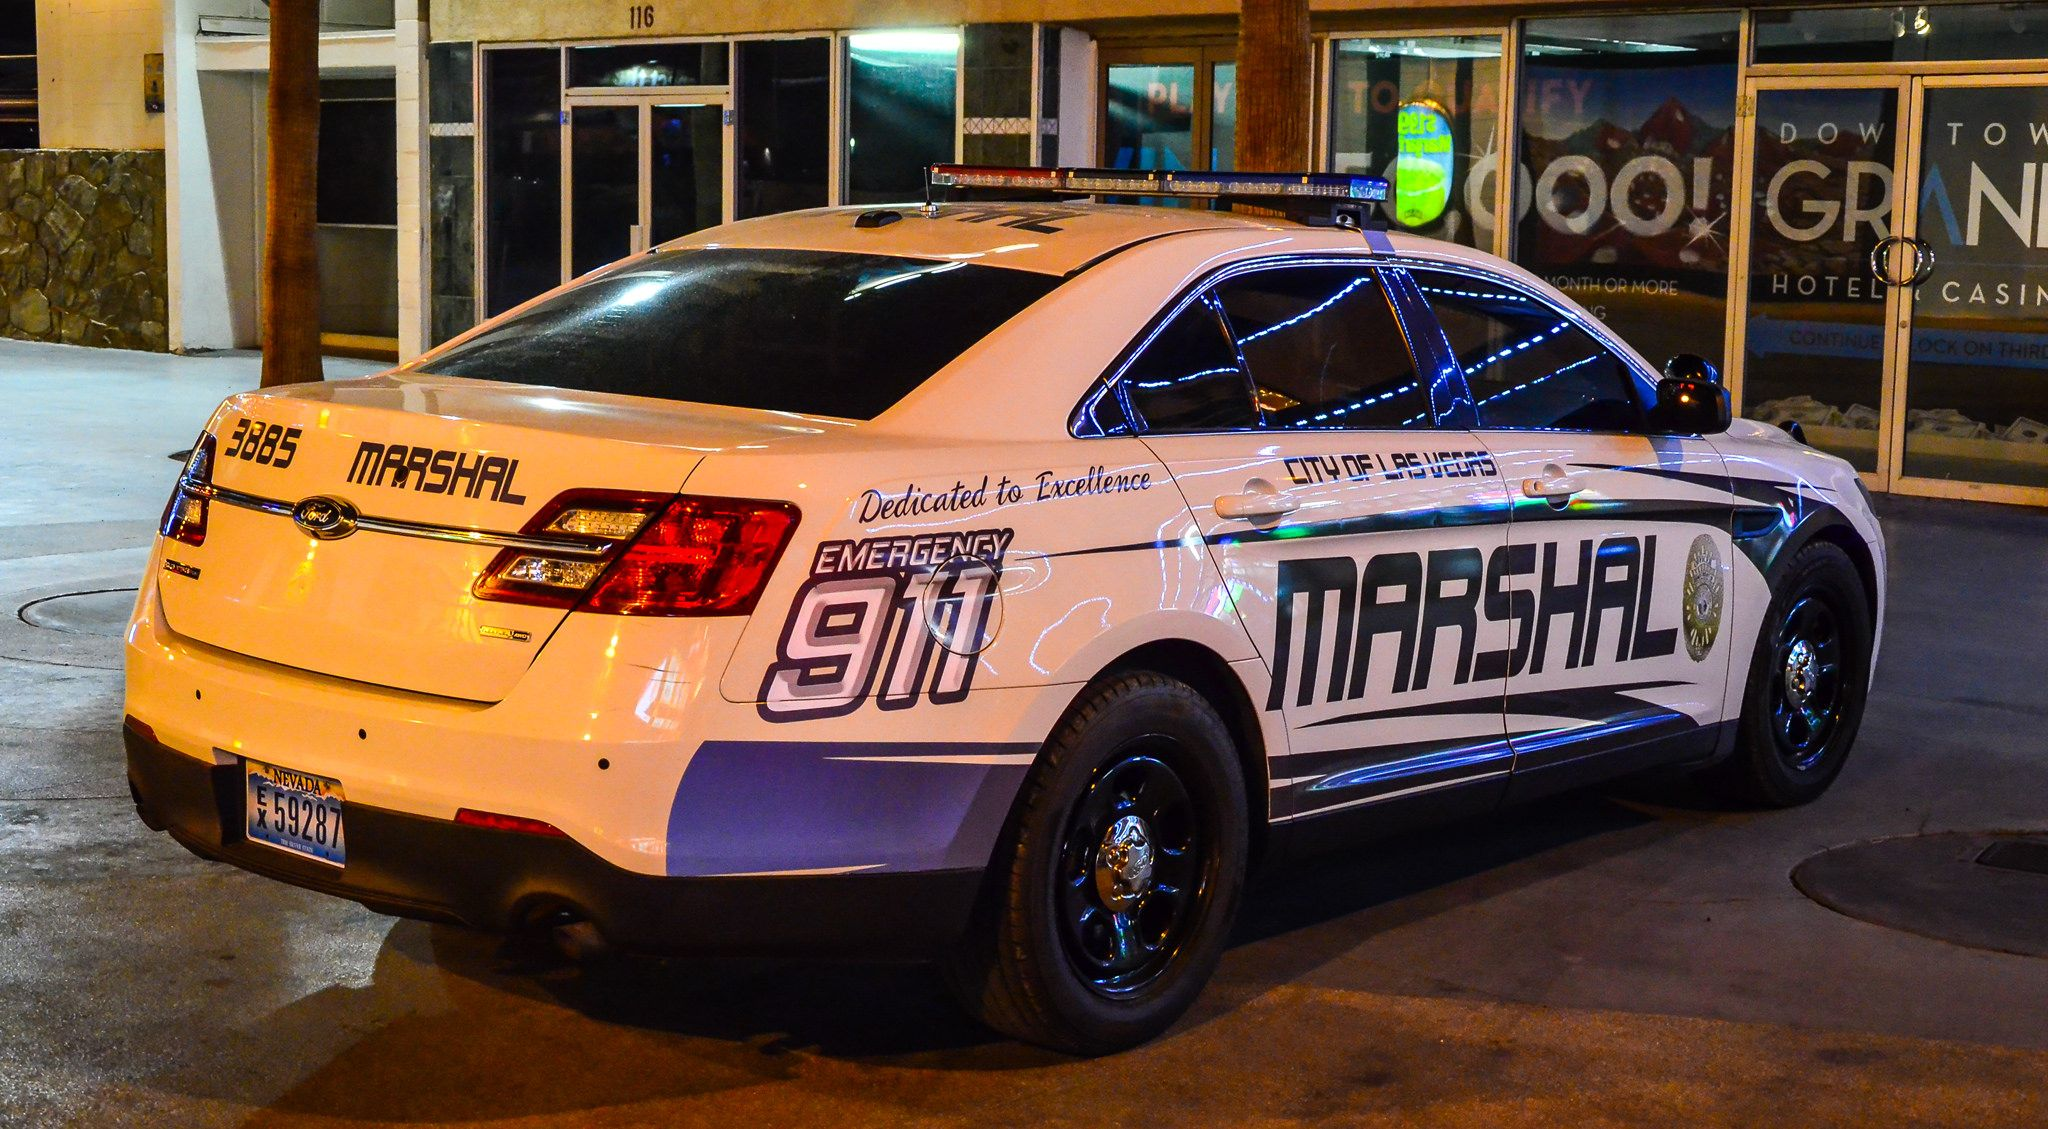 Marshal Officer Department Of Detention And Enforcement City Of Las Vegas Nevada Las Vegas City Fremont Street Experience Nevada